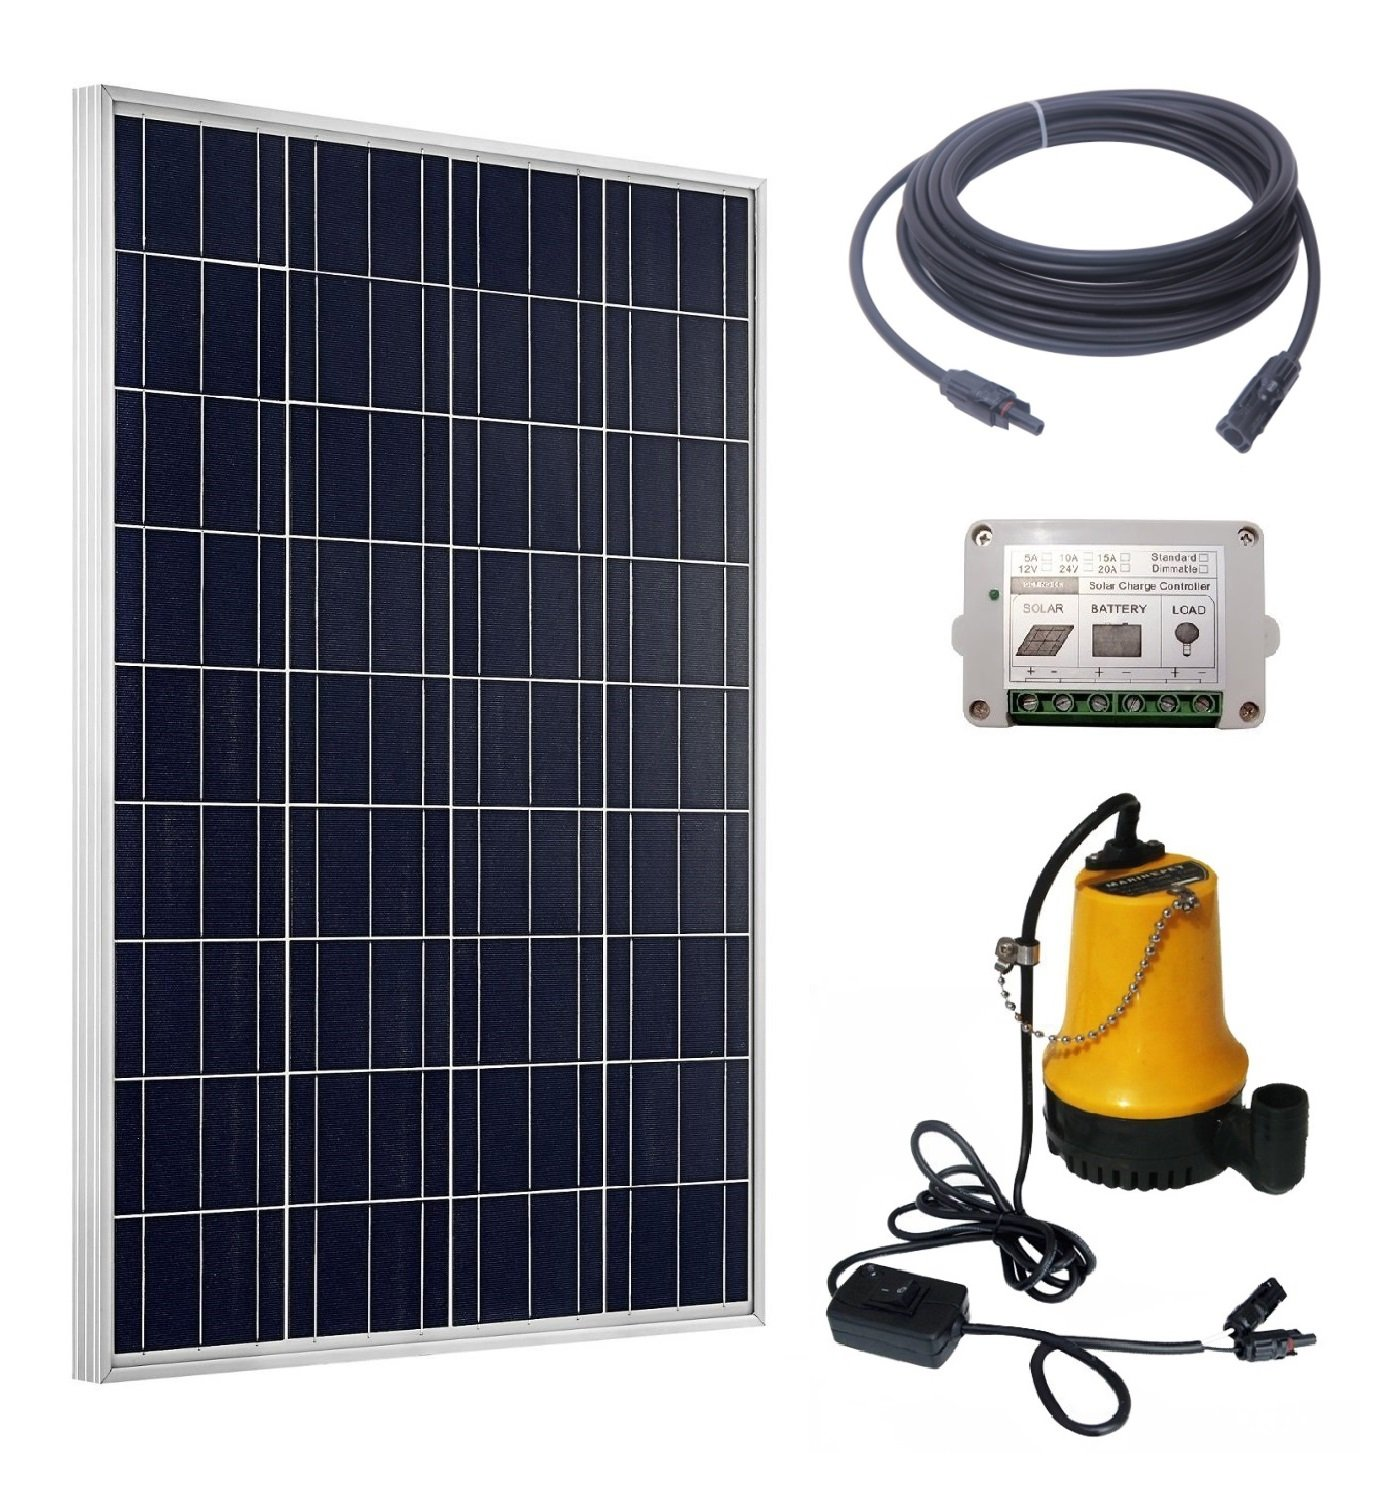 ECO-WORTHY Solar Pump Complete Kit: 100W Poly Solar Panel + 12V Water Pump + 15A Charge Controller + 50Ft Solar Cable Adapter